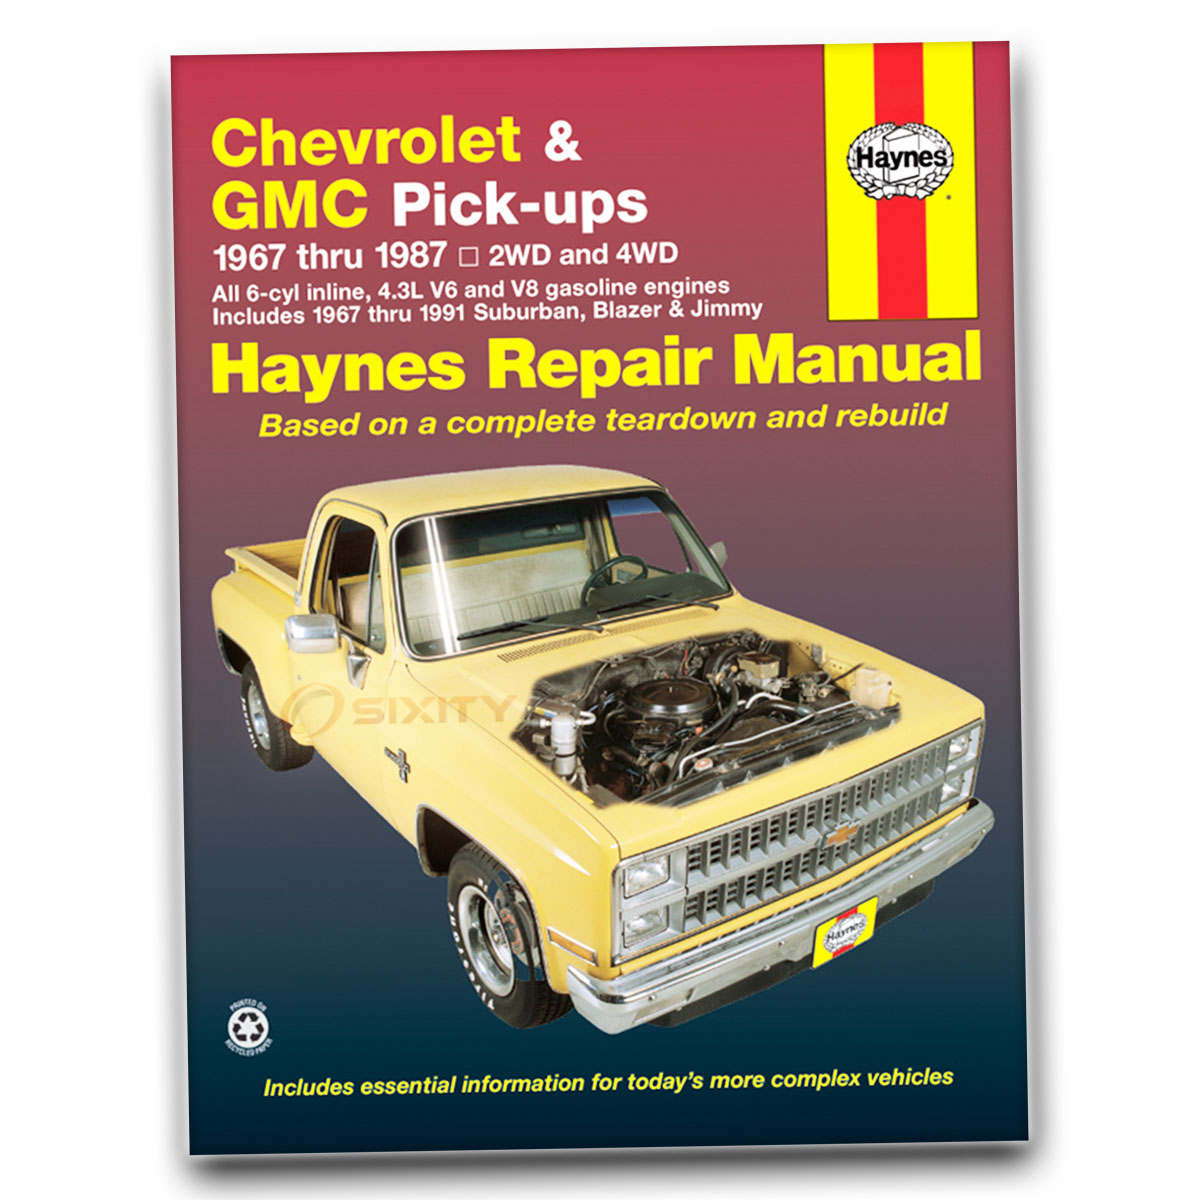 chevy c10 haynes repair manual big ten custom deluxe silverado rh ebay com 1974 Chevrolet Pickup Truck 1974 Chevrolet Truck